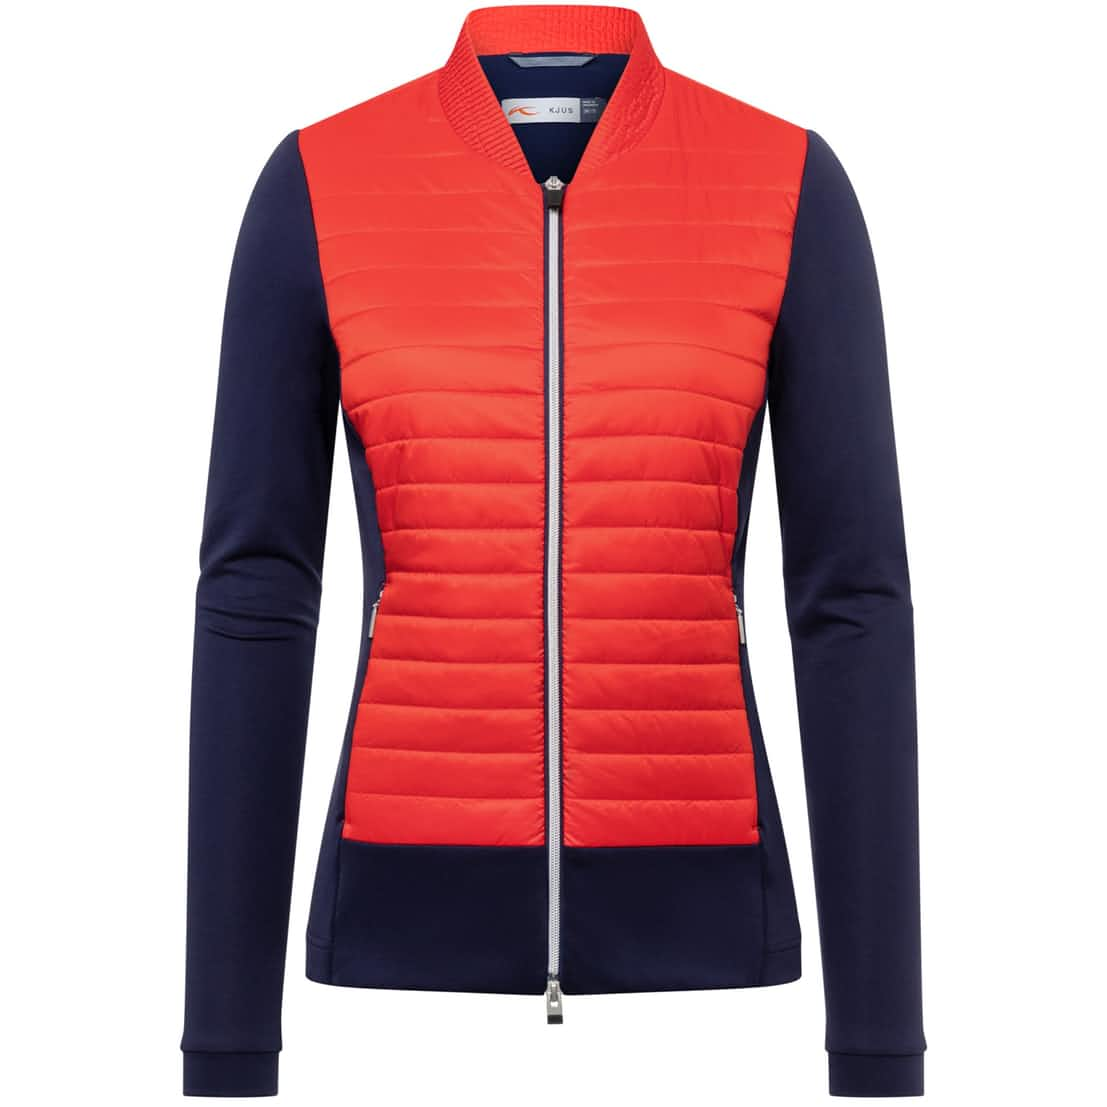 Womens Retention Jacket Fiery Red/Atlanta Blue - AW20